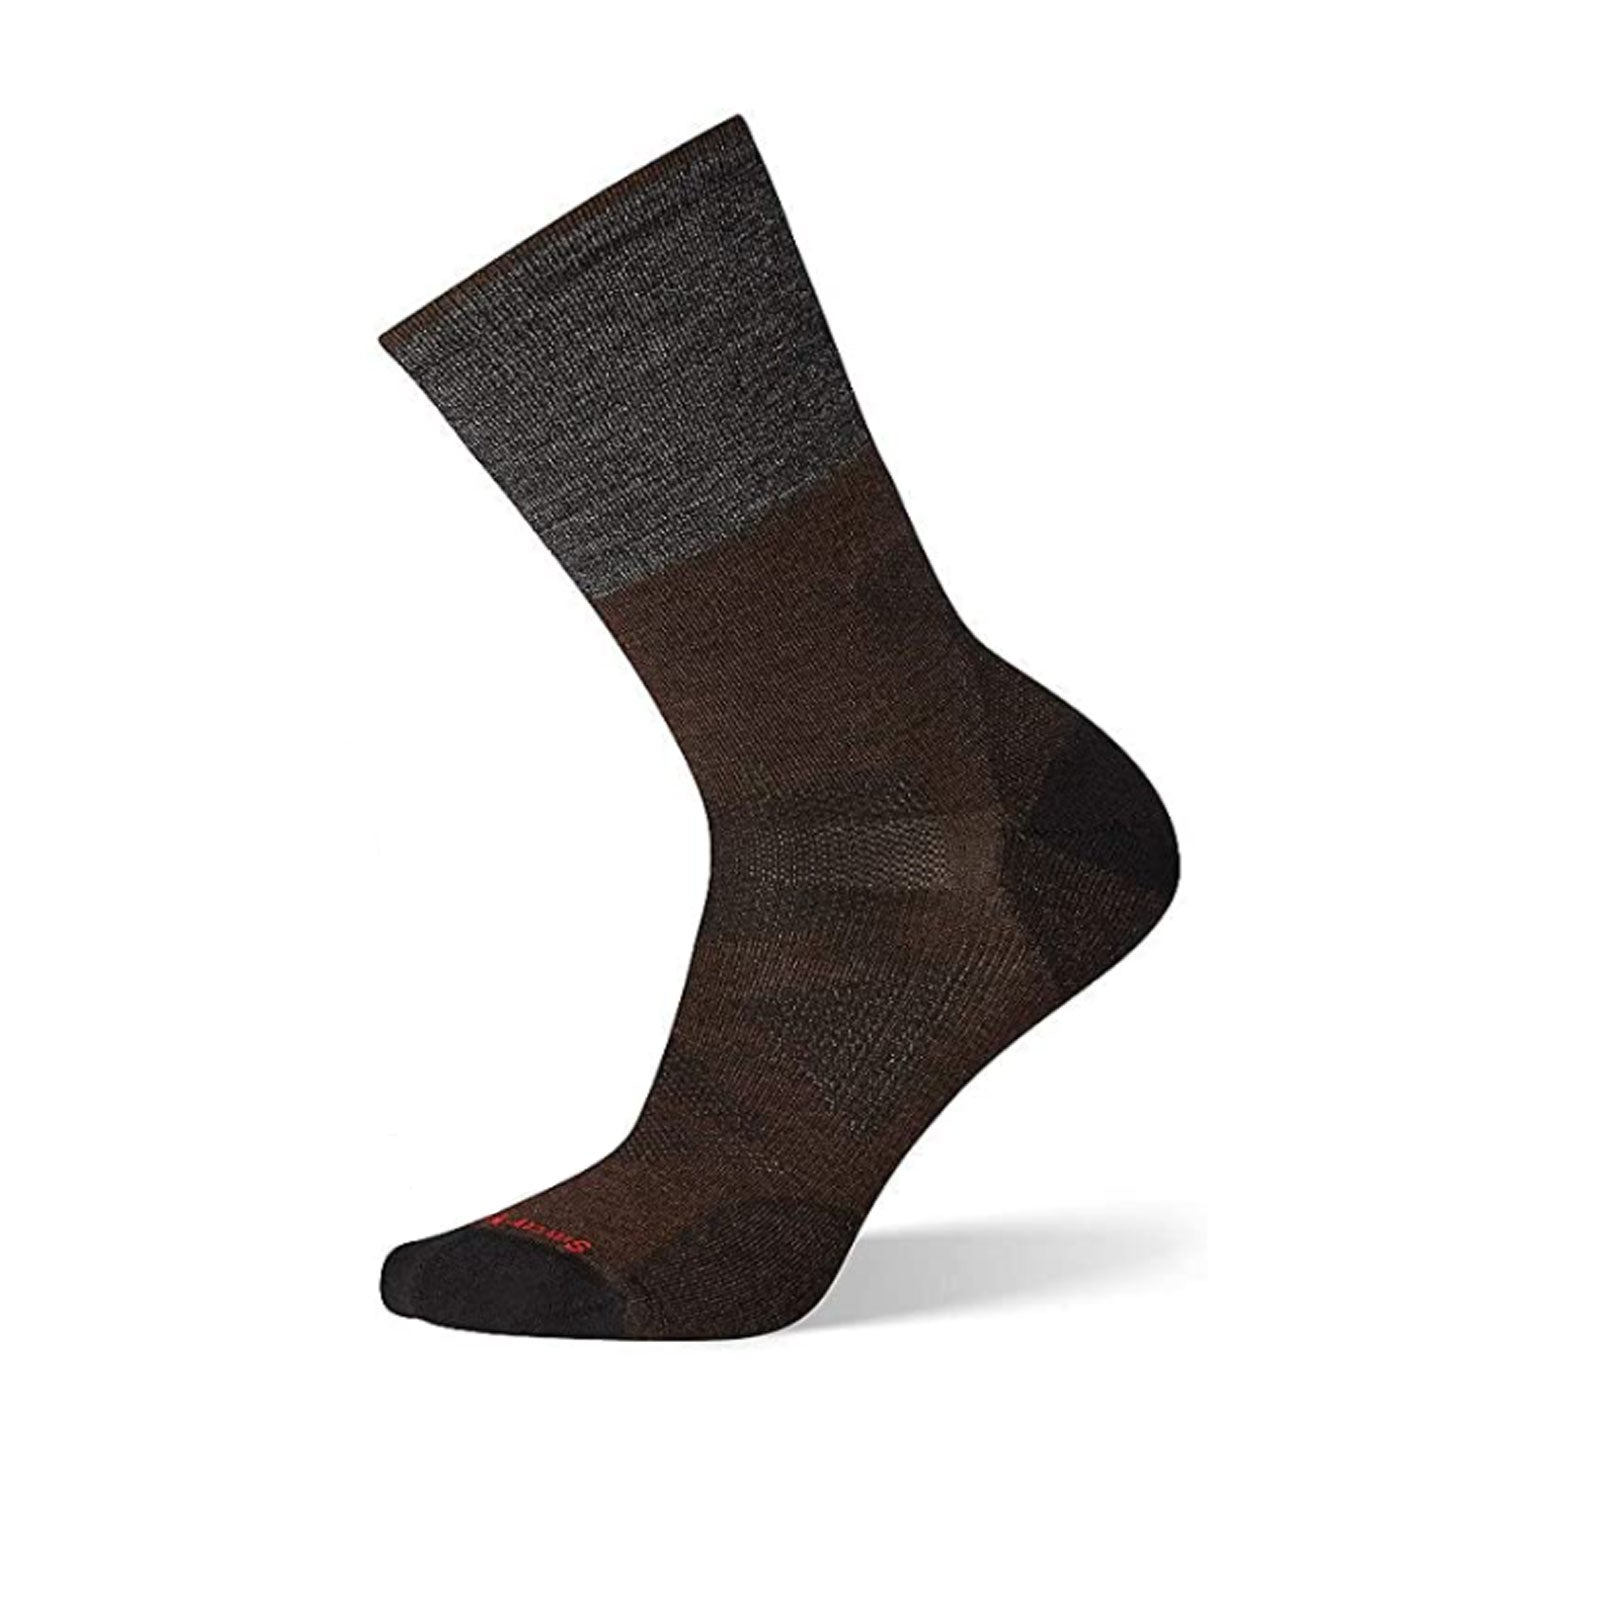 Smartwool PhD Pro Approach Crew (Men) - Chestnut Socks - Perf - Crew - The Heel Shoe Fitters